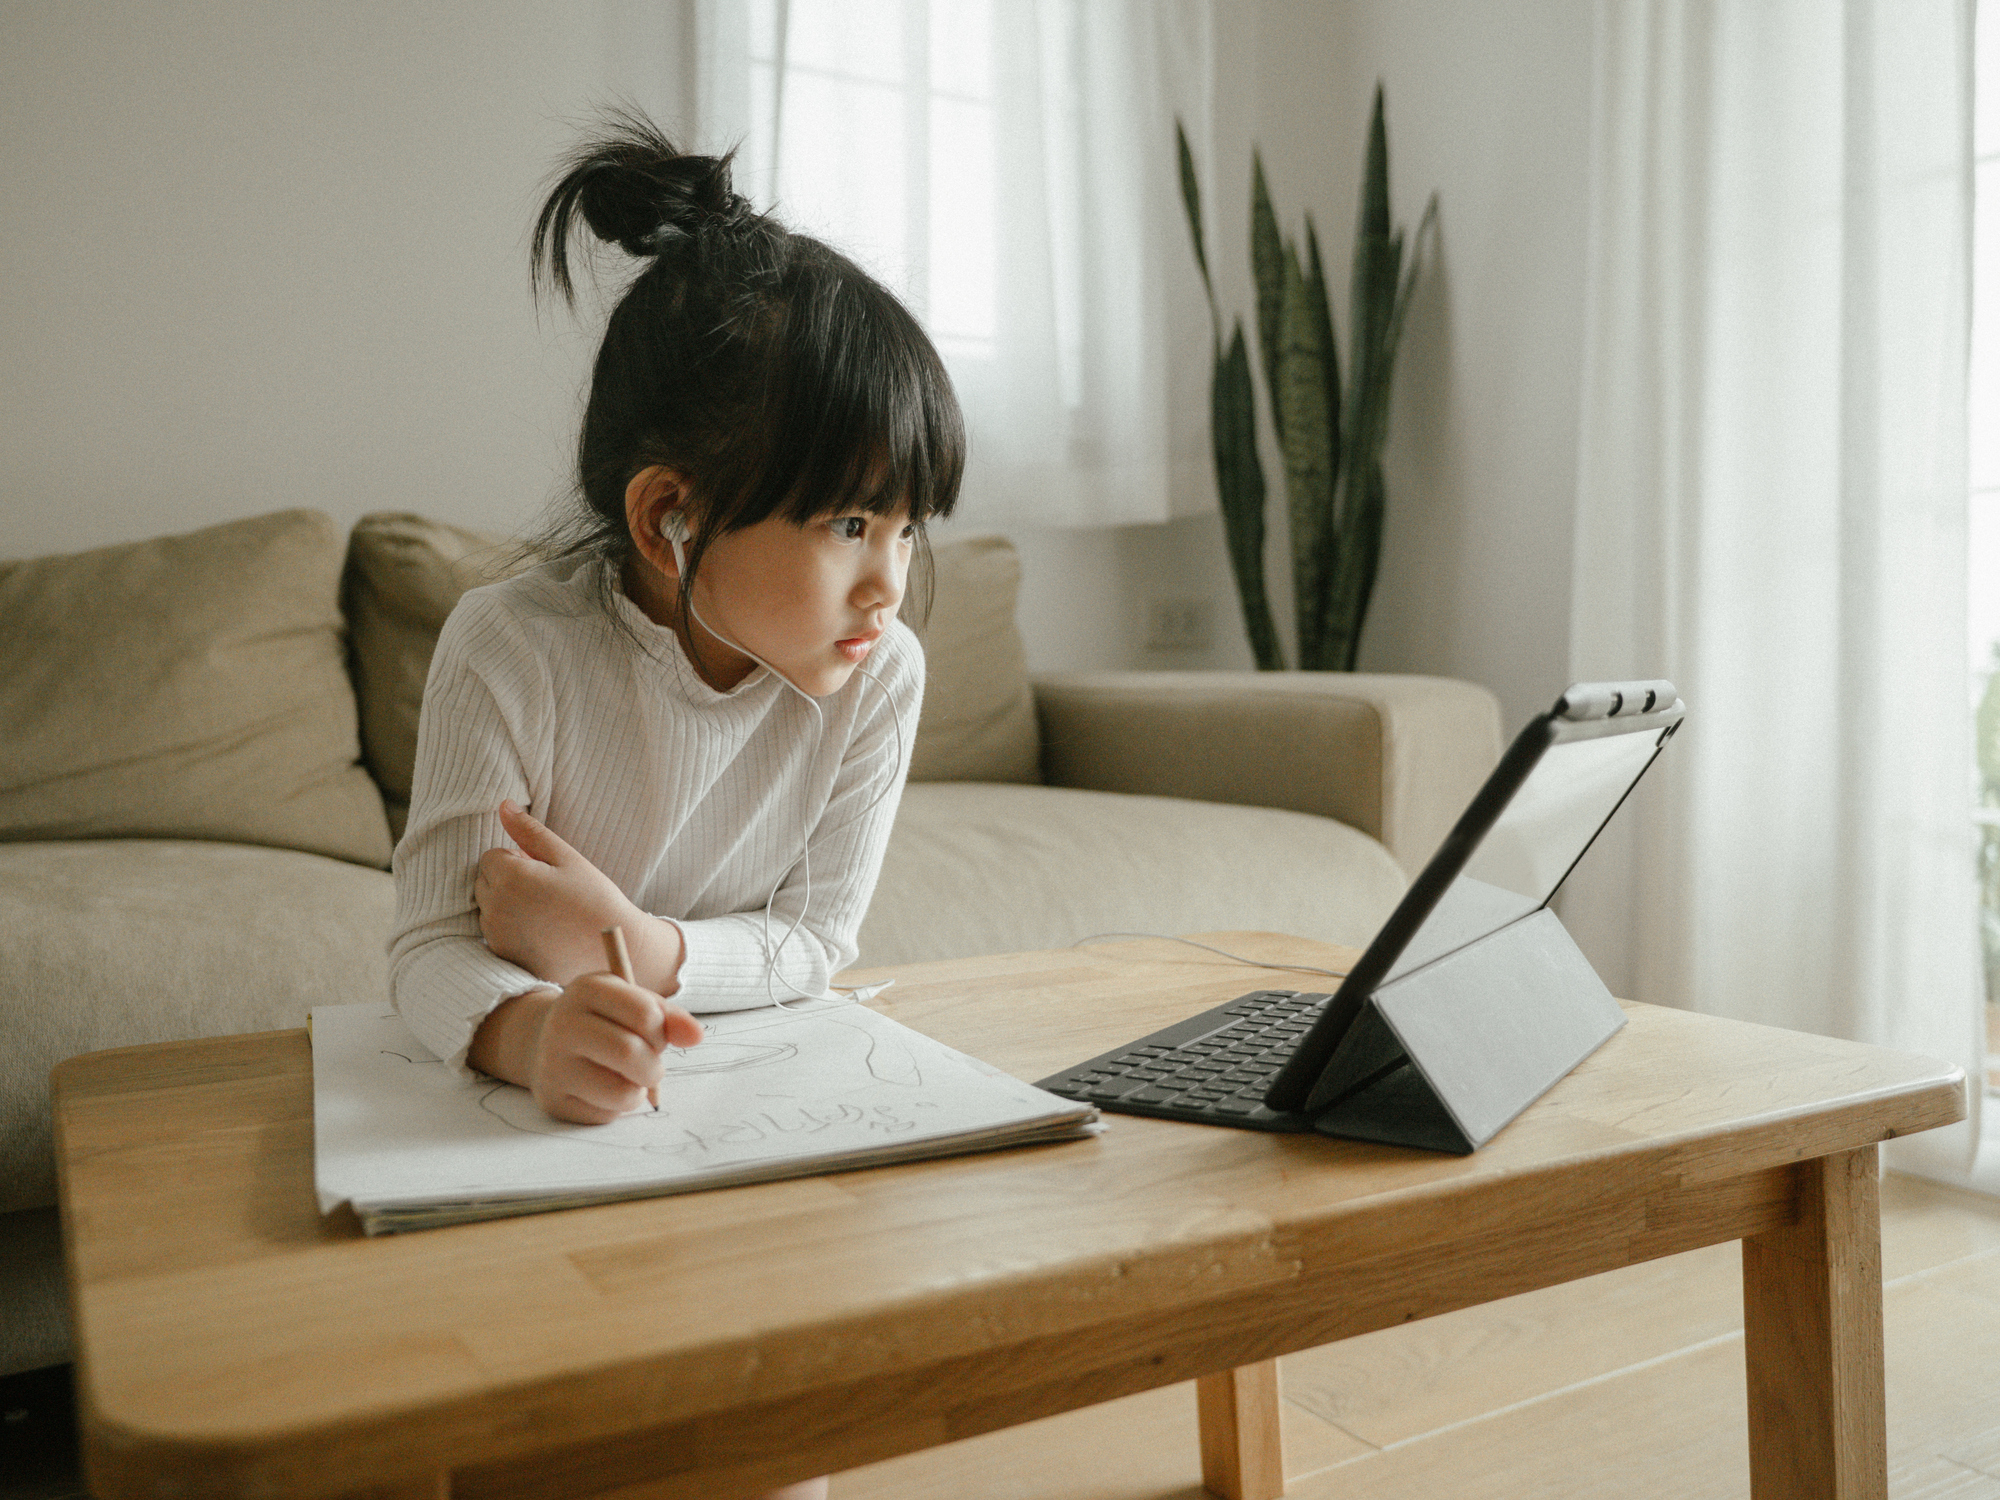 Young girl sitting at a table, watching something on her tablet while writing on a piece of paper with headphones in.